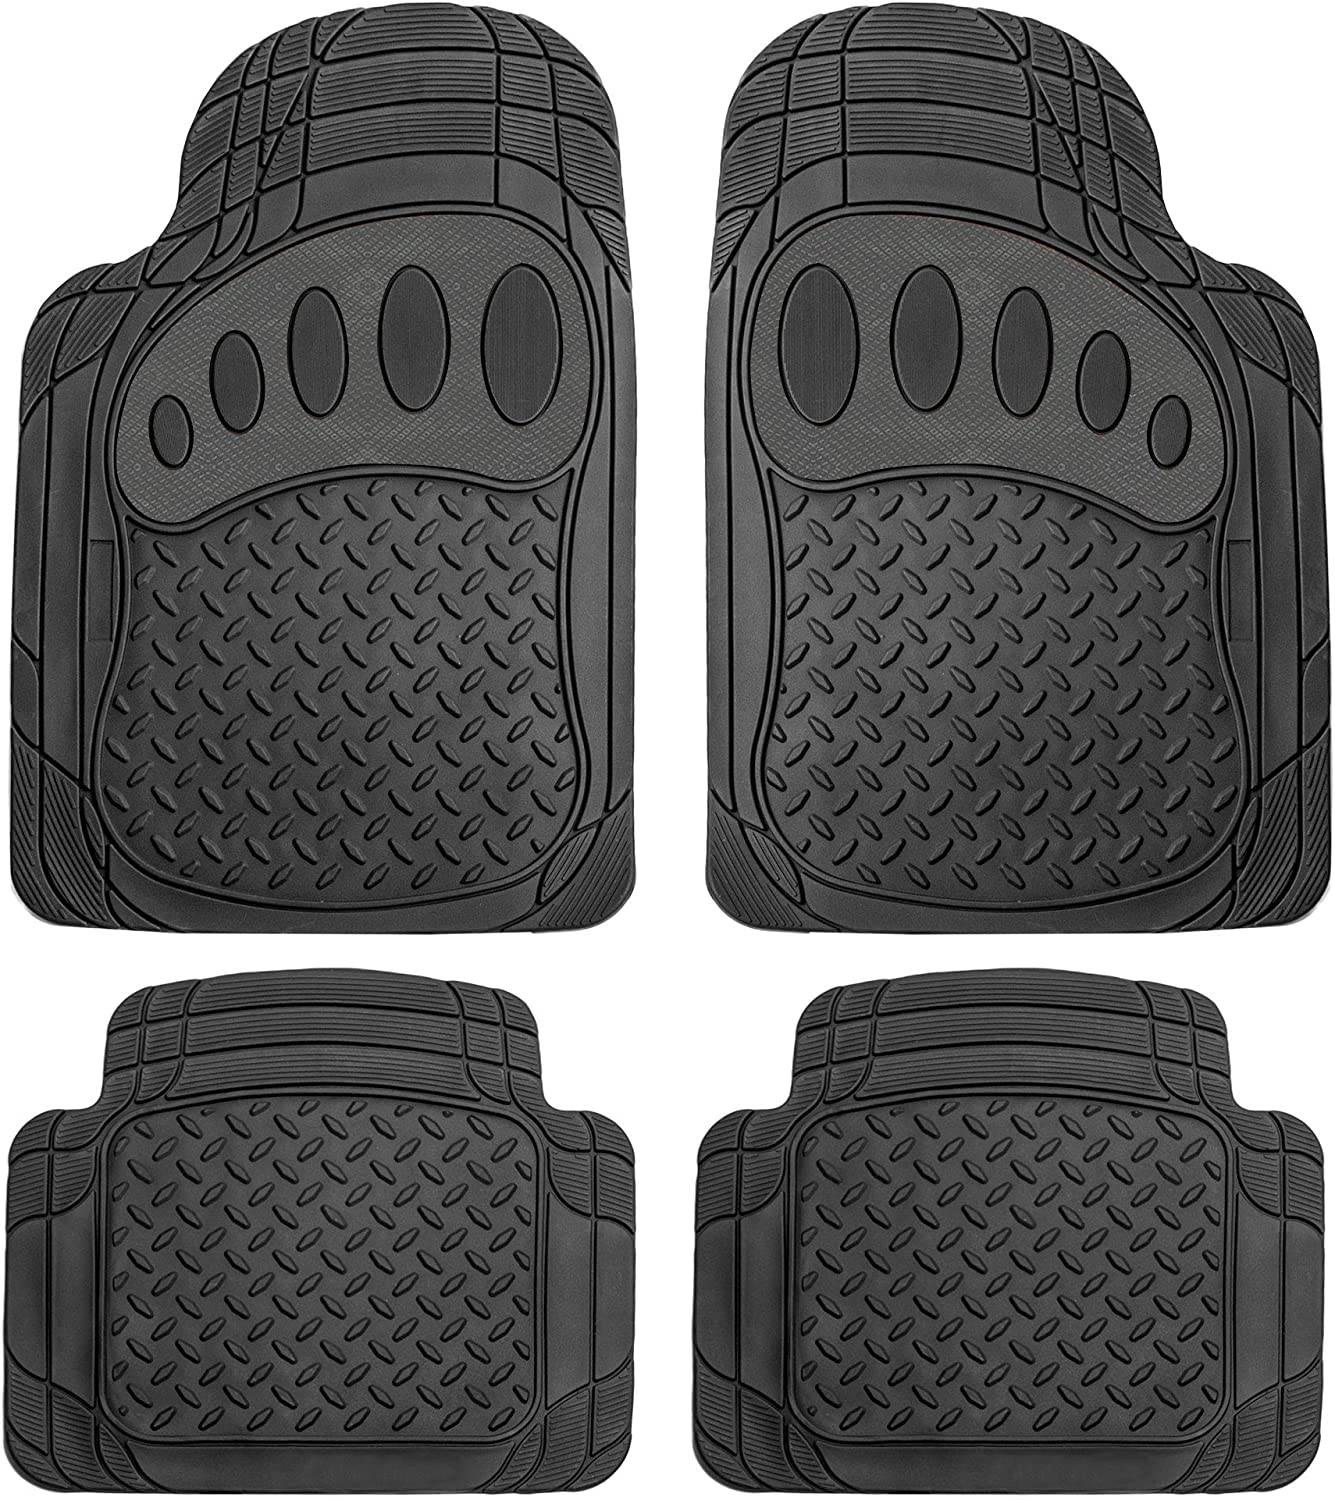 FH Group Solid Black Pattern F11310SOLIDBLACK Trimmable Car 4 Piece Heavy Duty All Weather Floor Mats